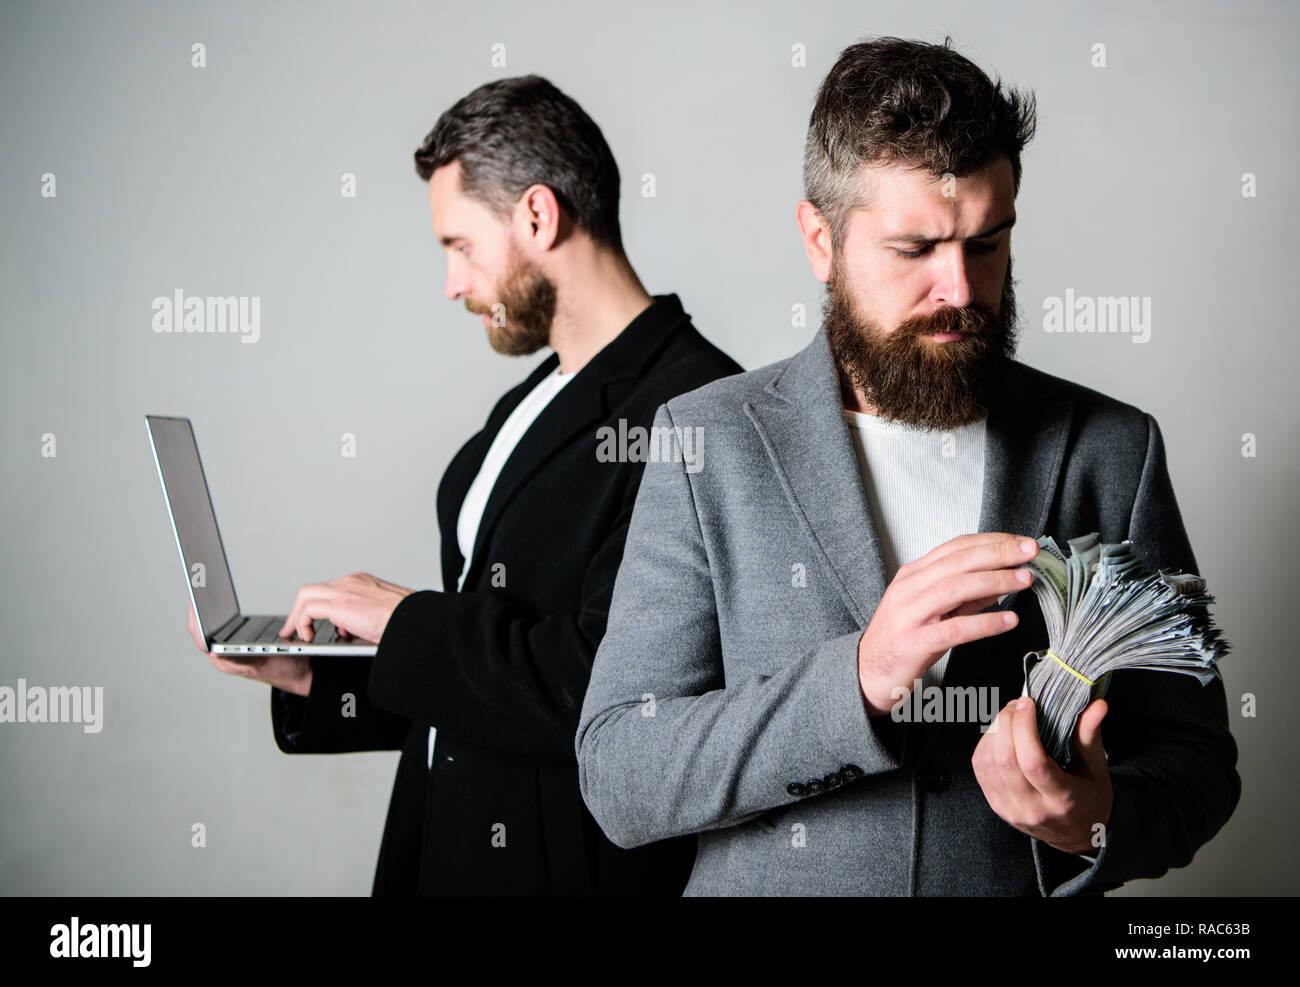 Developing applications. Digital technology. IT business. Online business. Earn money online business. They know how to make money. Team of web developer with laptop and sales manager with cash money. Stock Photo